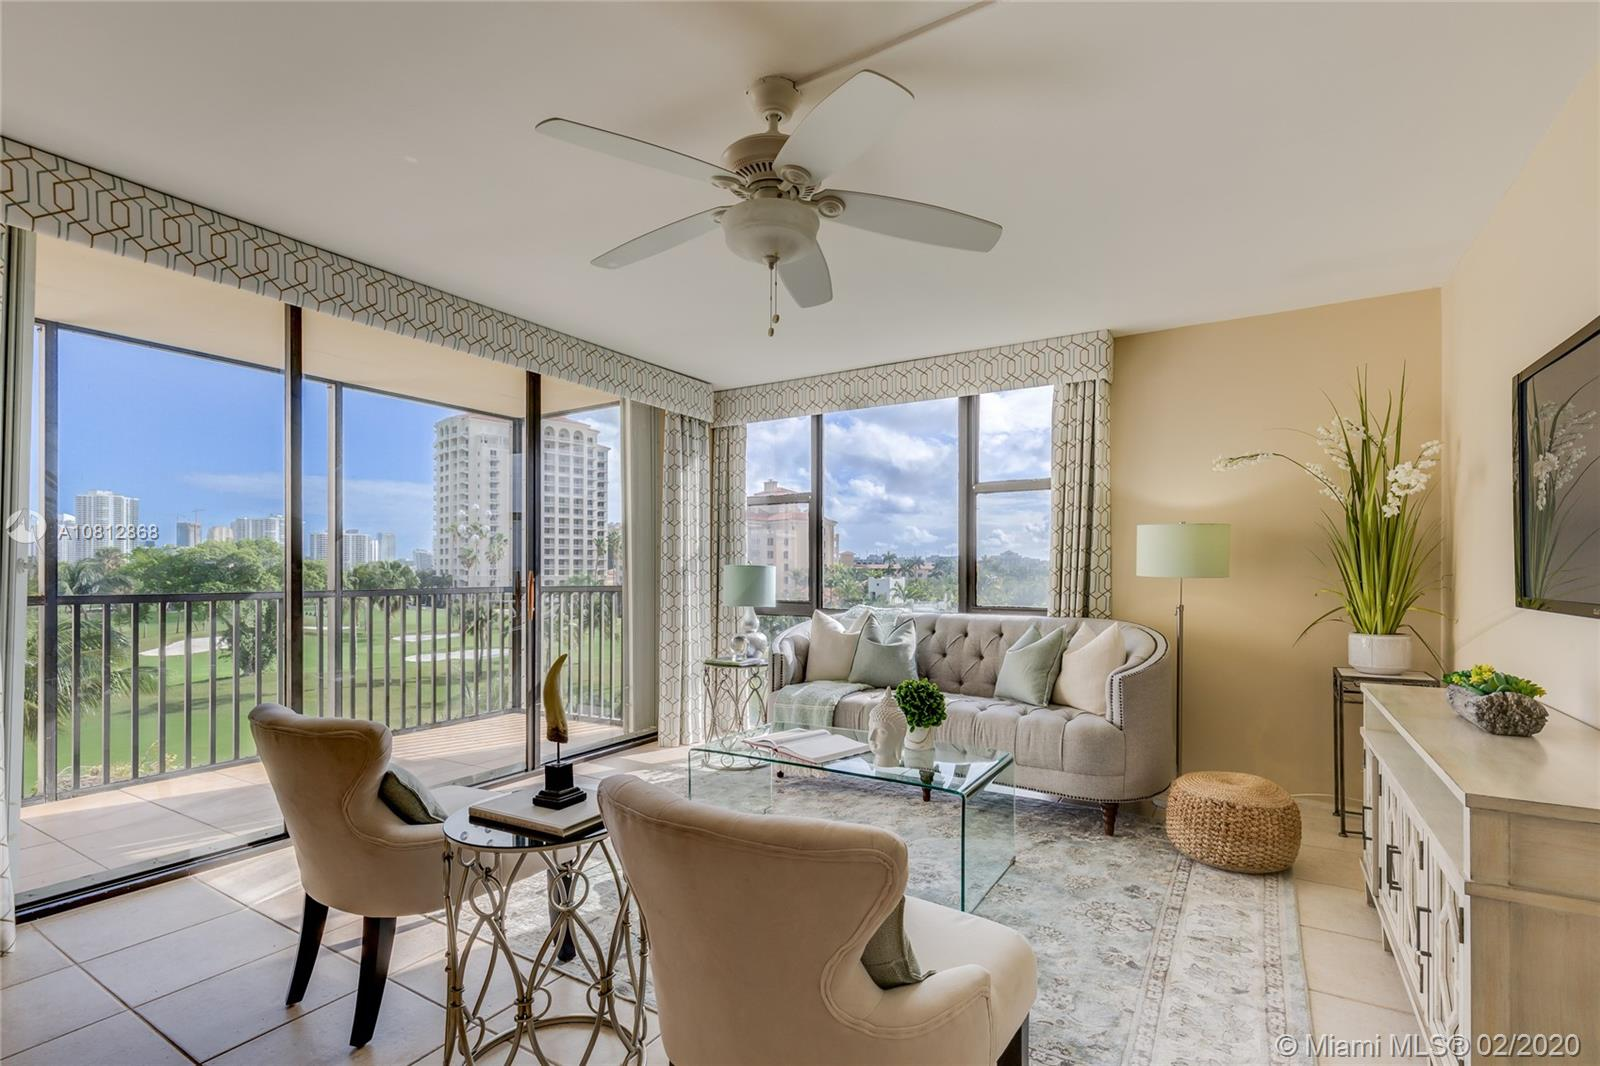 20335 W Country Club Dr #409 For Sale A10812868, FL